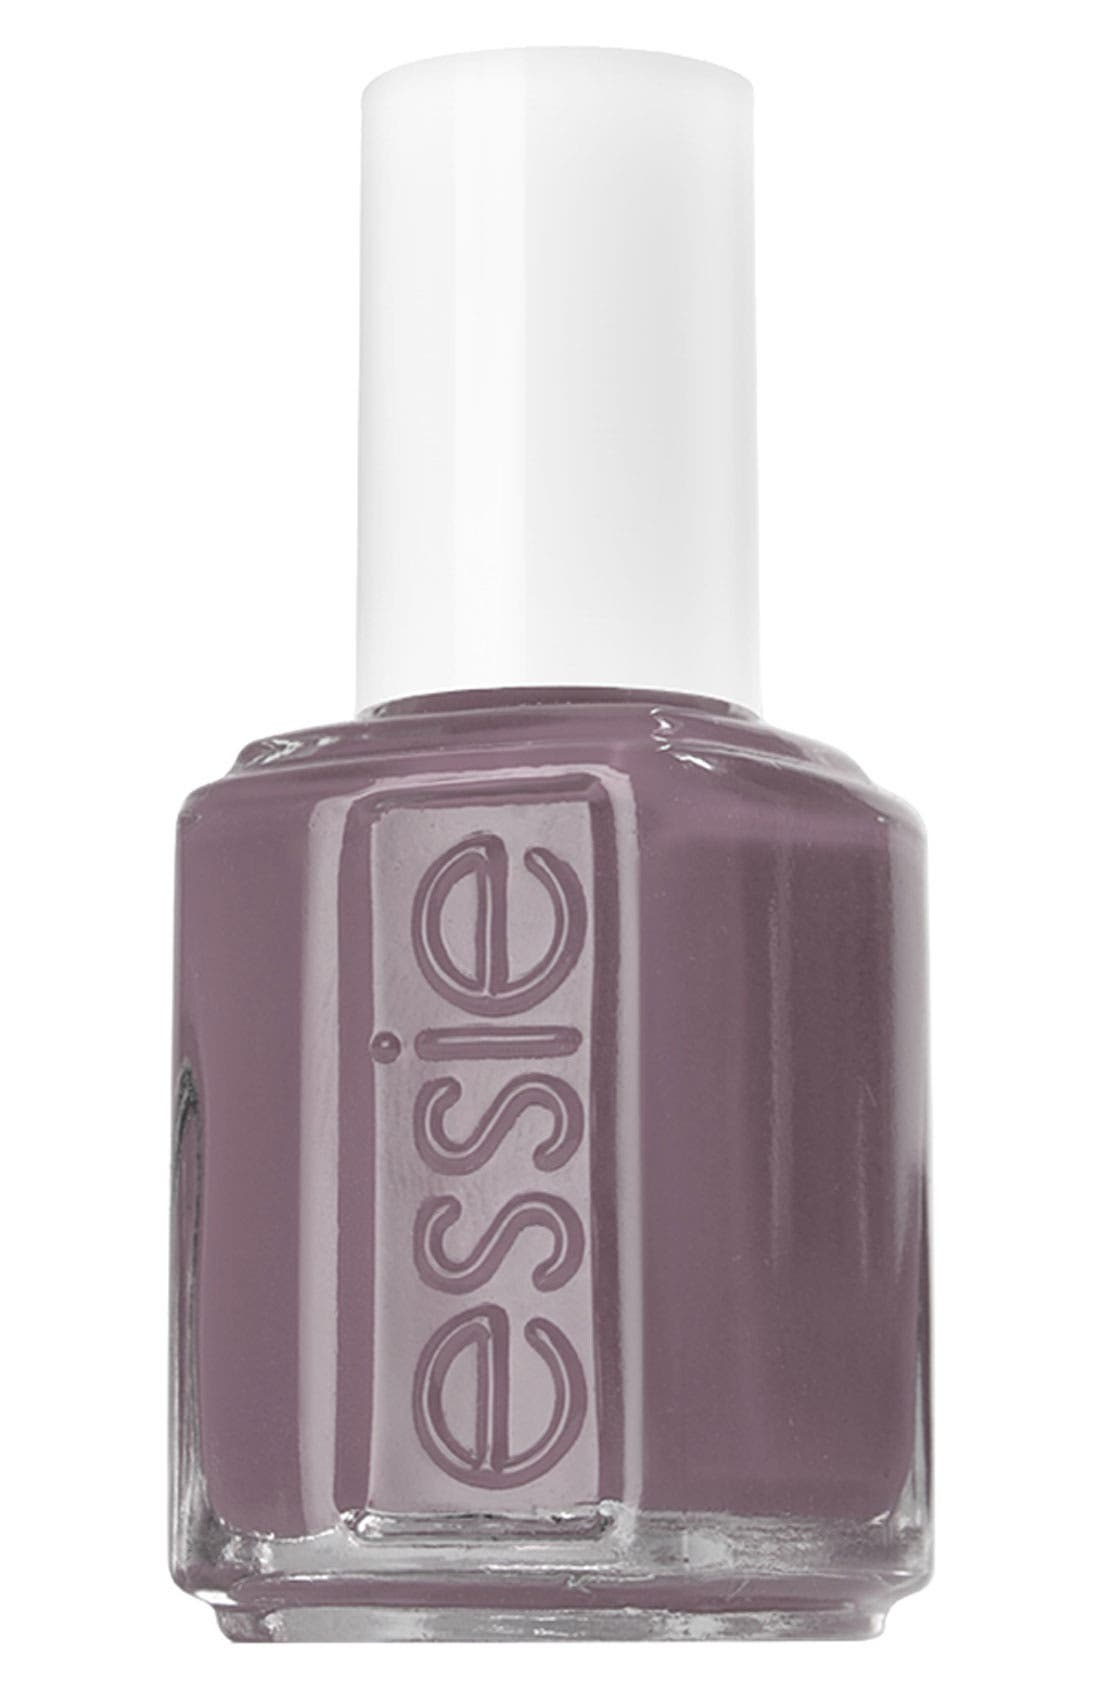 essie® Nail Polish – Mauves